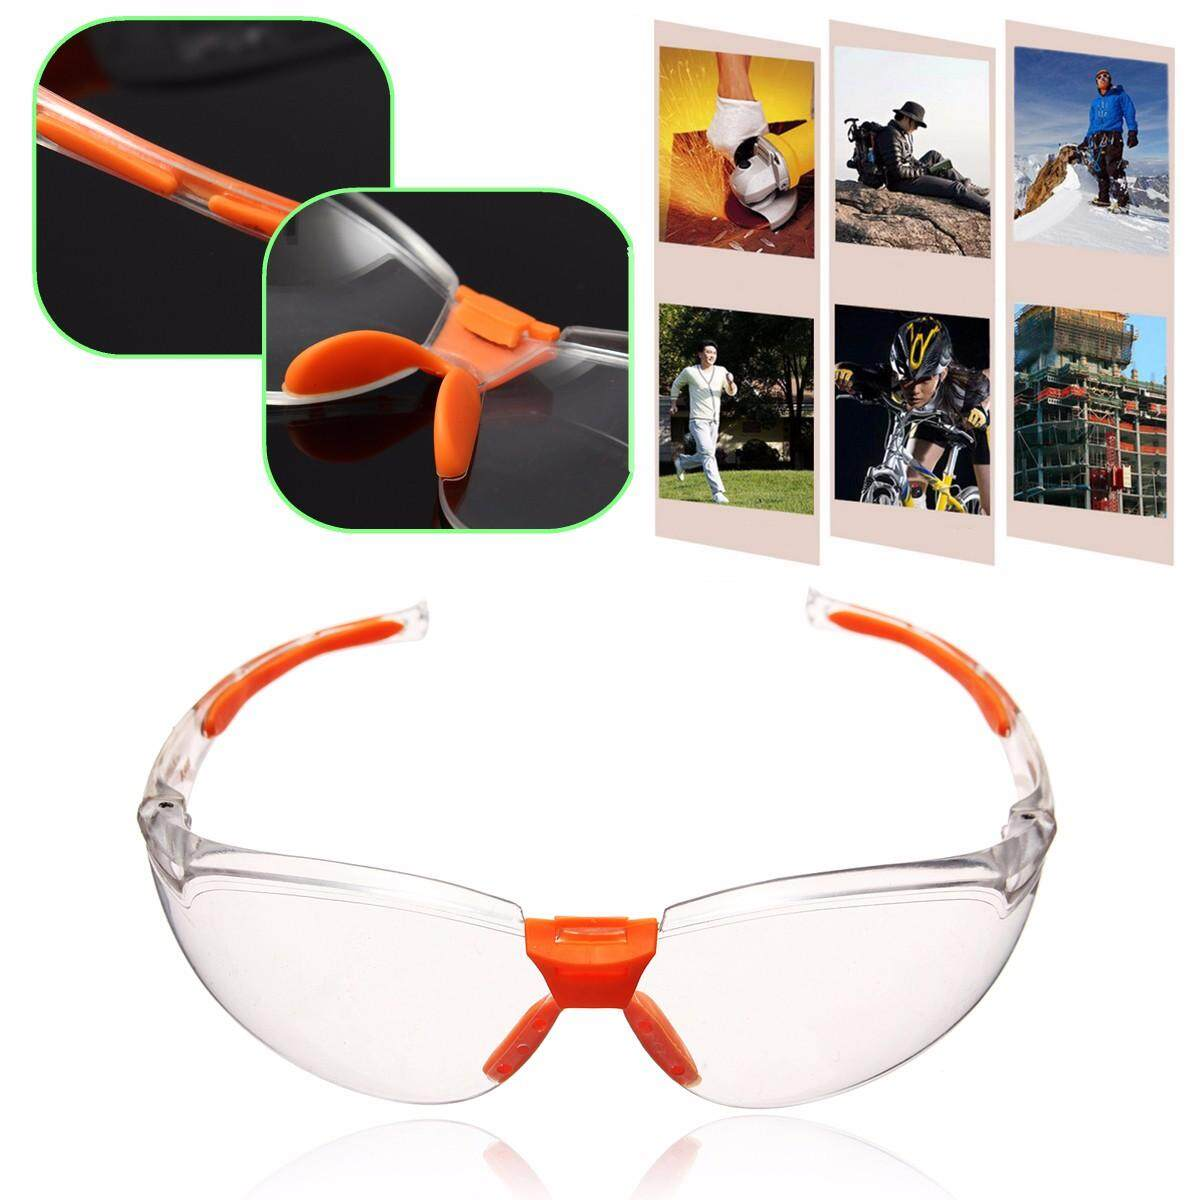 2pcs Safety Welding Cycling Riding Driving Glasses Sports Sunglasses Protect Goggles